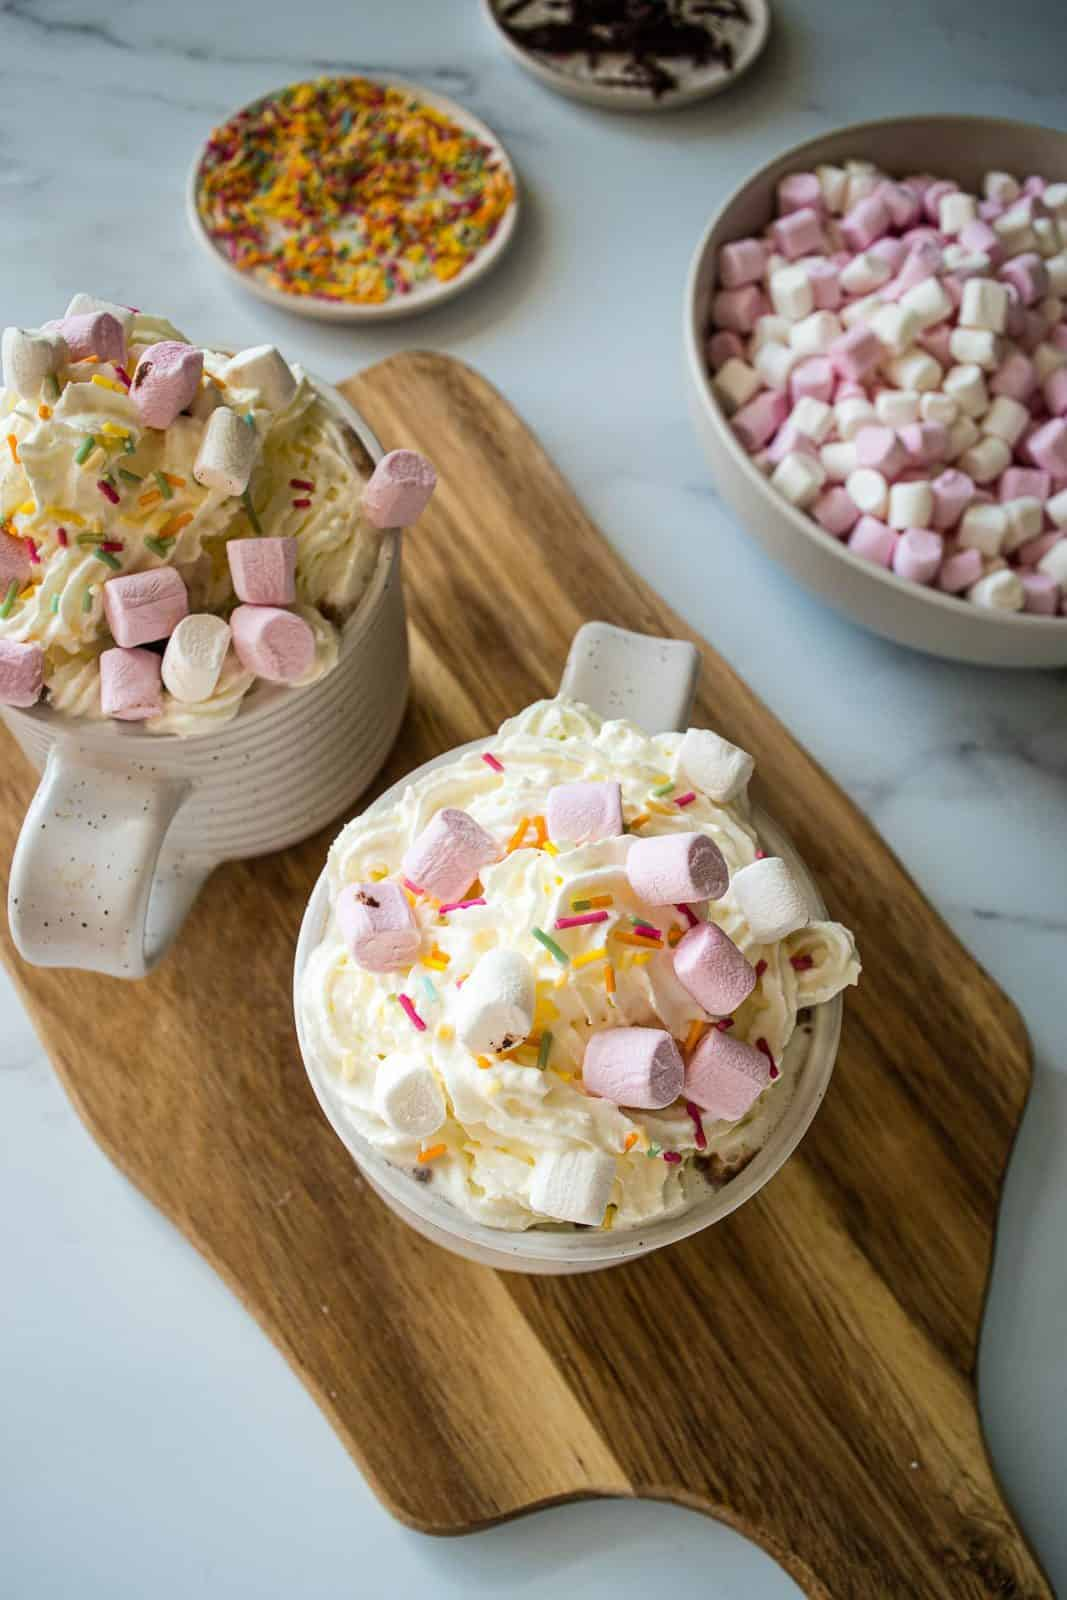 Two cups of hot chocolate topped with whipped cream and marshmallows, with bowls of sprinkles and marshmallows in the back.